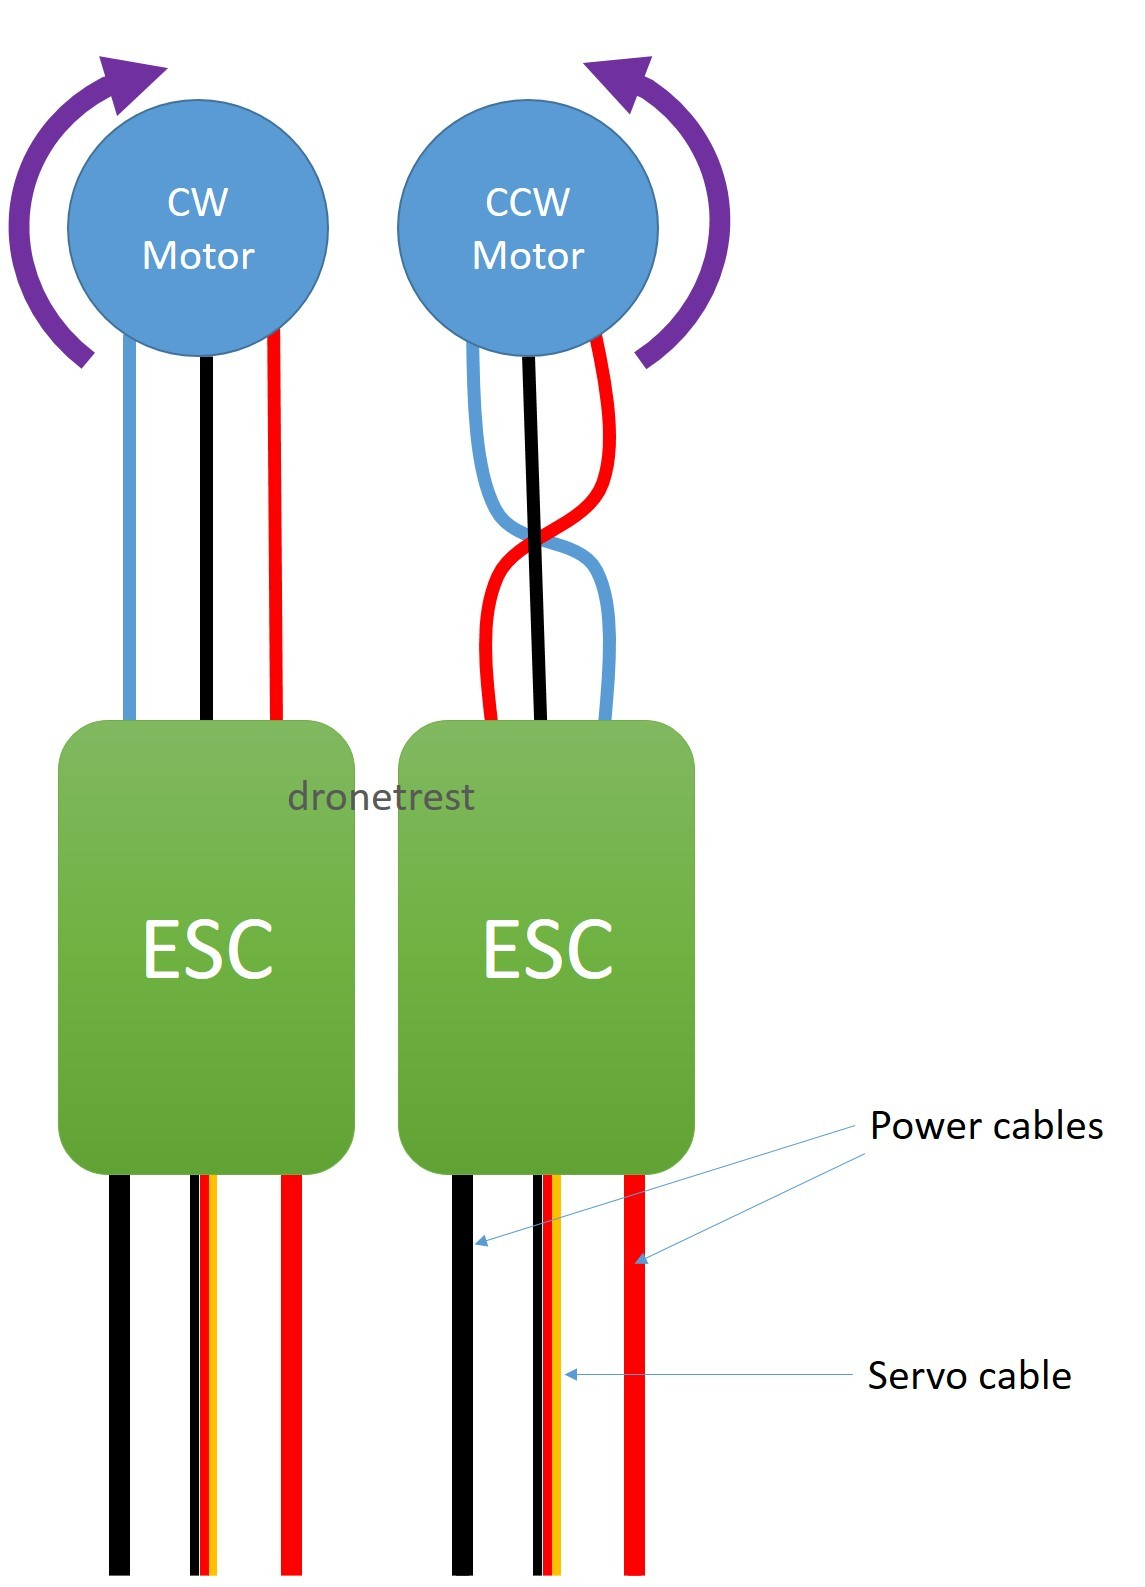 3 phase brushless generator wiring diagram esc to motor connection guide - how to reverse your motor ... brushless esc wiring diagram